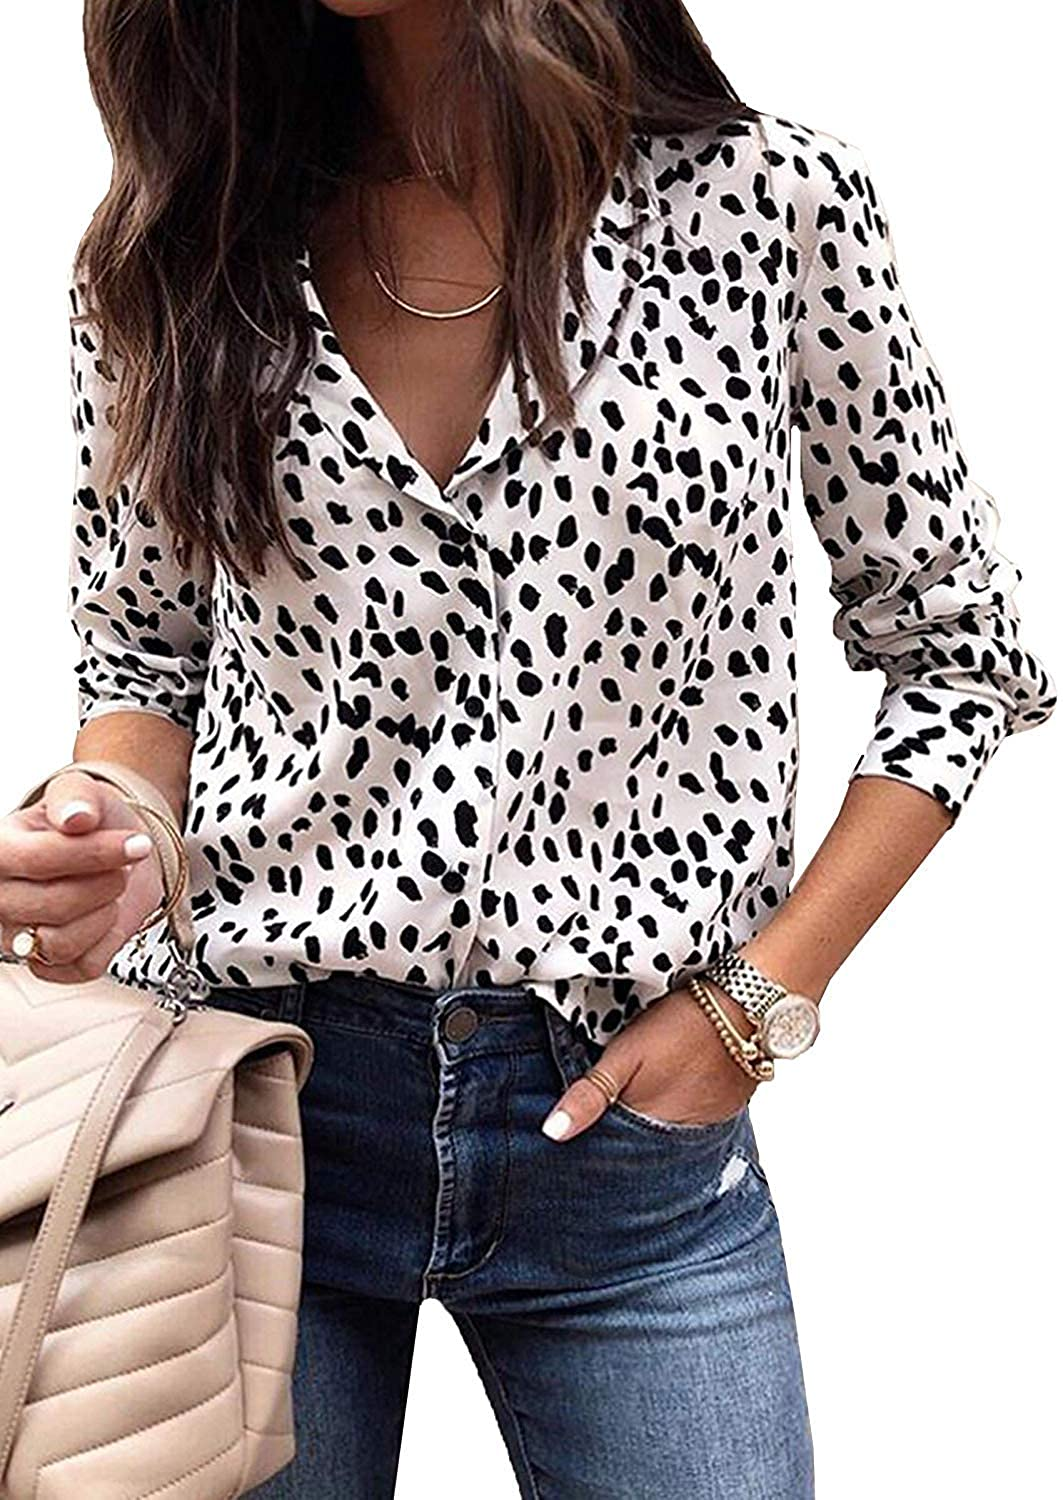 Women Leopard Print Tops -Casual V Neck Long Sleeve Button Down Shirt Knit Tunic Blouses